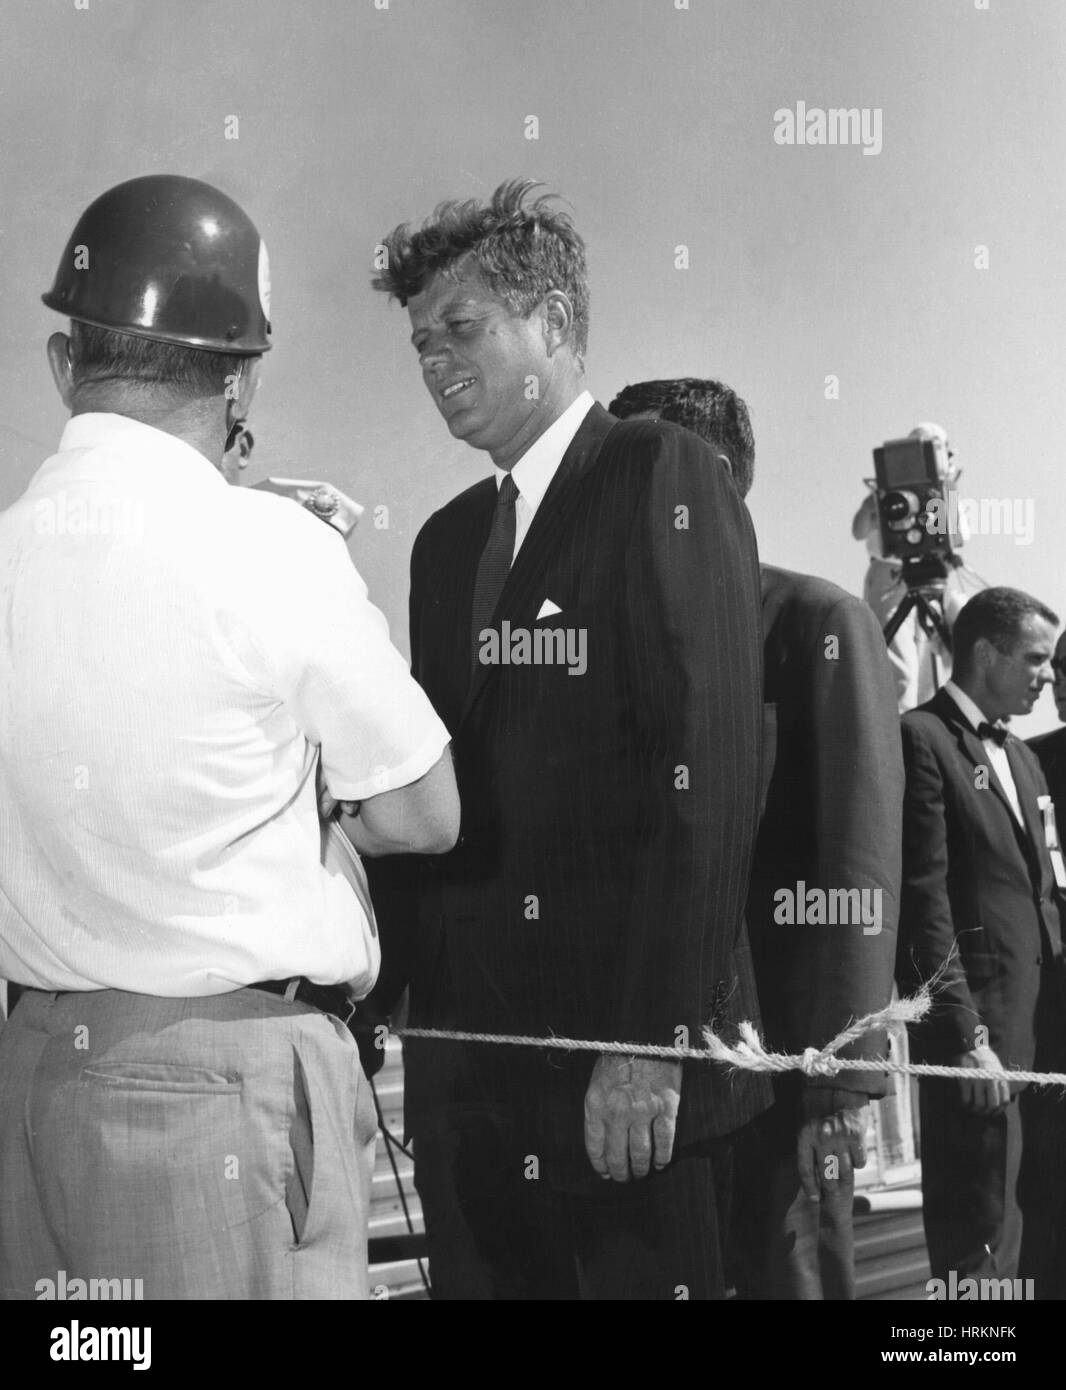 JFK at Cape Canaveral - Stock Image